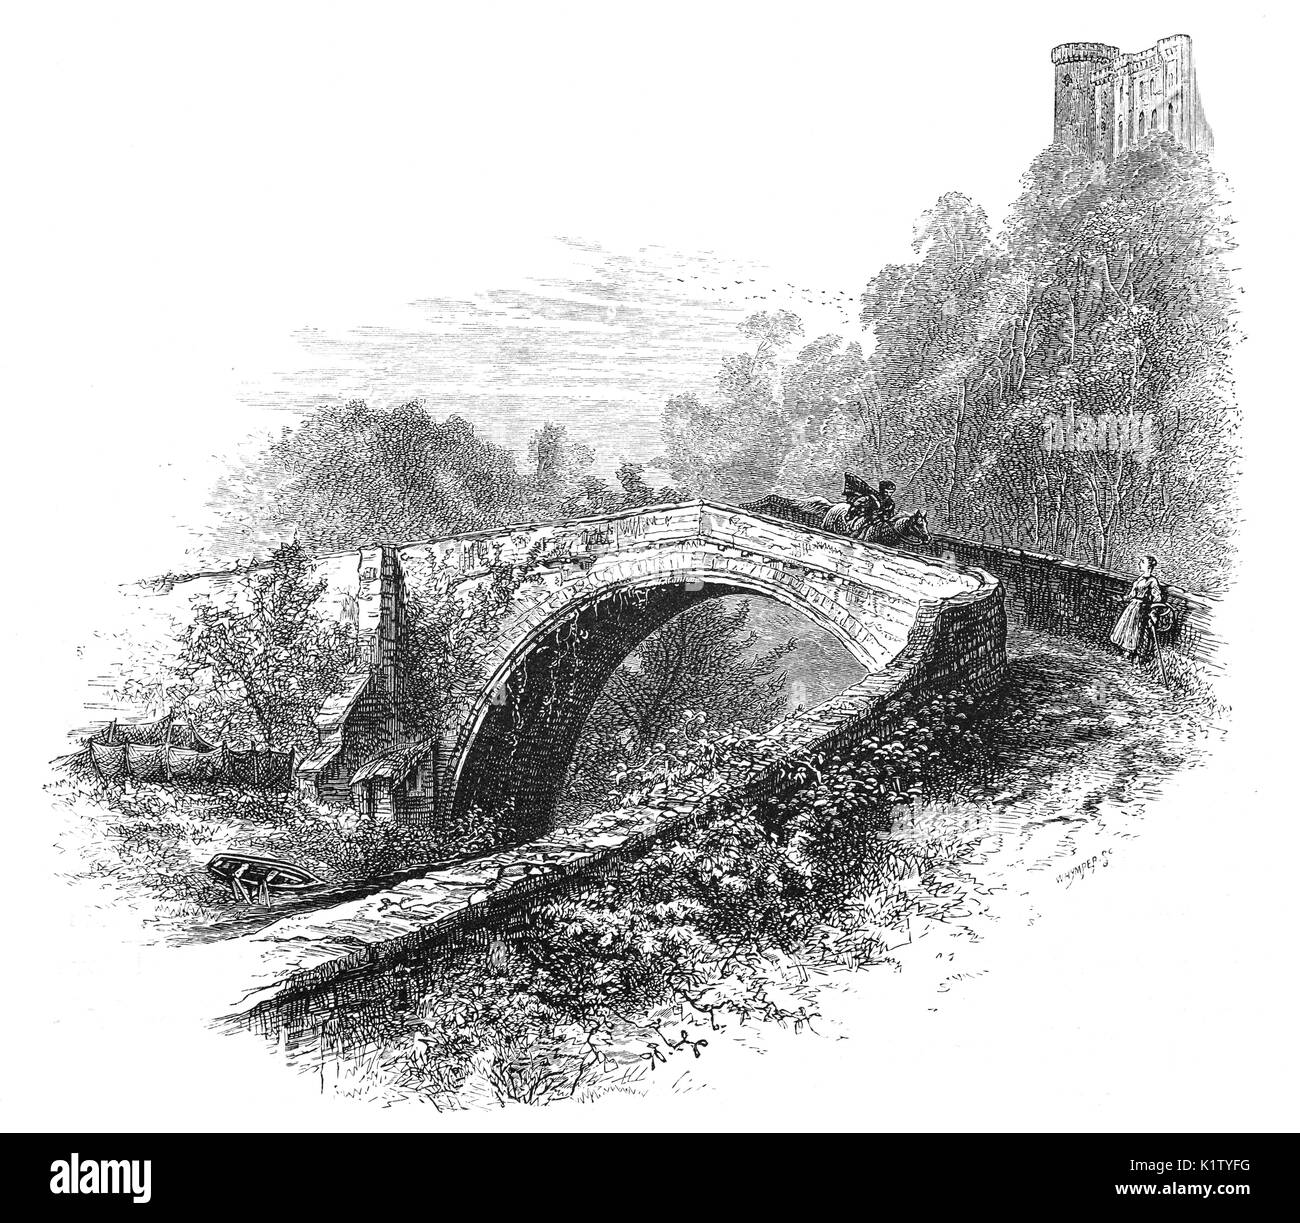 1870: A horseman crossing the medieval Twizell bridge built in 1511, two years before the Battle of Flodden, provided the only dry crossing of the River Till between the Tweed and Etal.  Above it the ruins of Twizell Castle, aka Twizel,  Tillmouth Park, Northumberland, northern England. - Stock Image